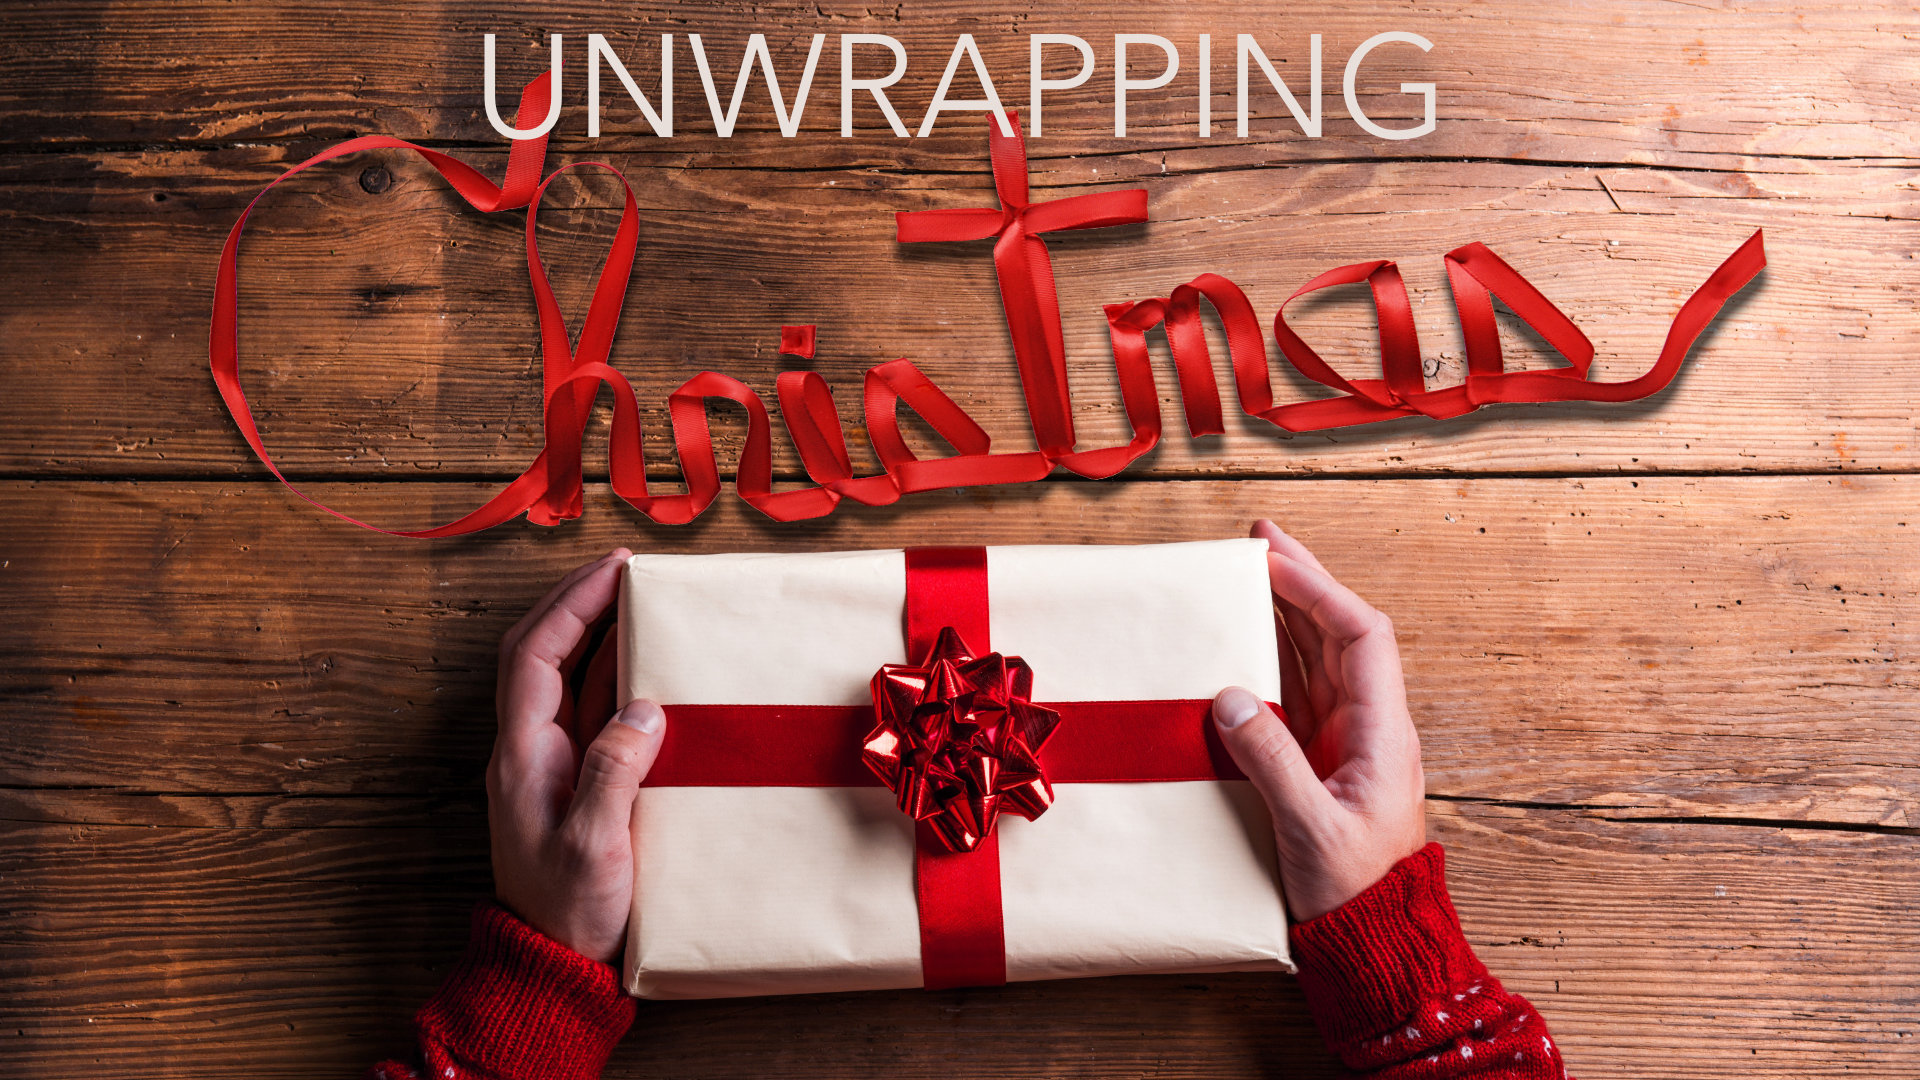 Unwrapping Christmas • Dec. 4 - 25, 2017